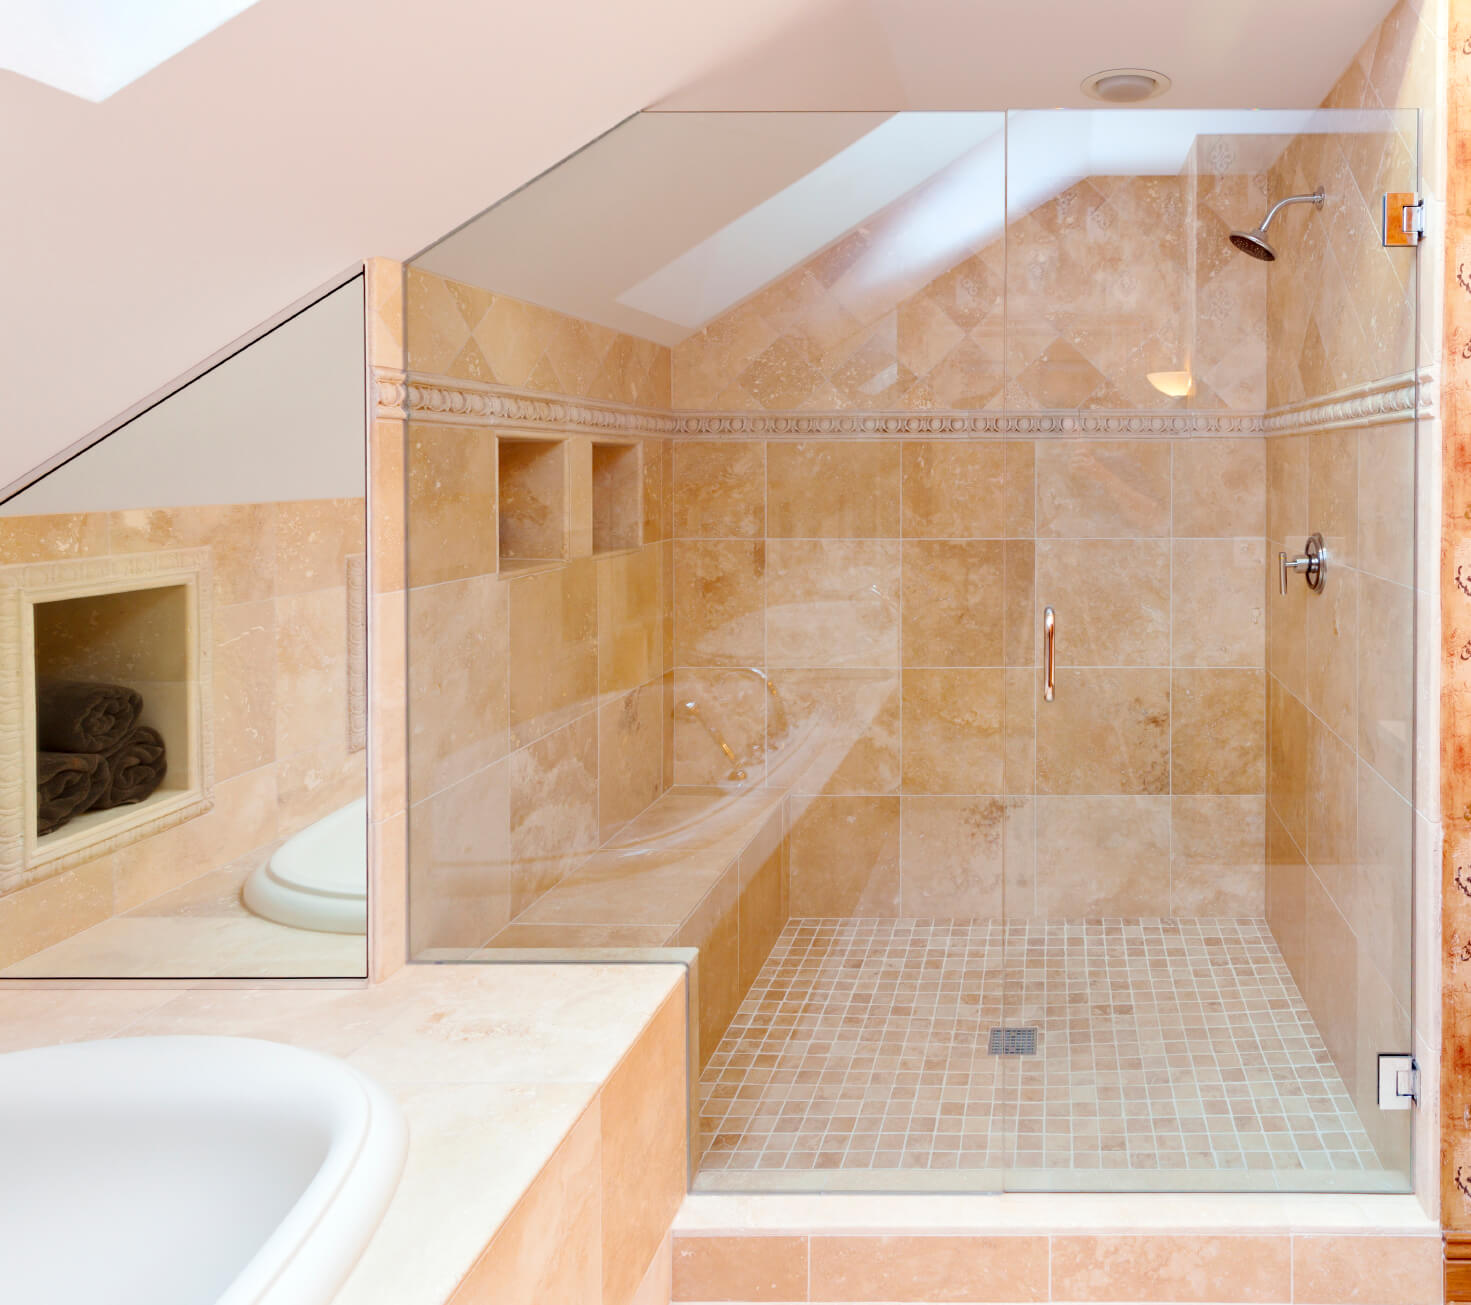 A peek of the corner of a skylight can be seen in this heavily tiled bathroom space.